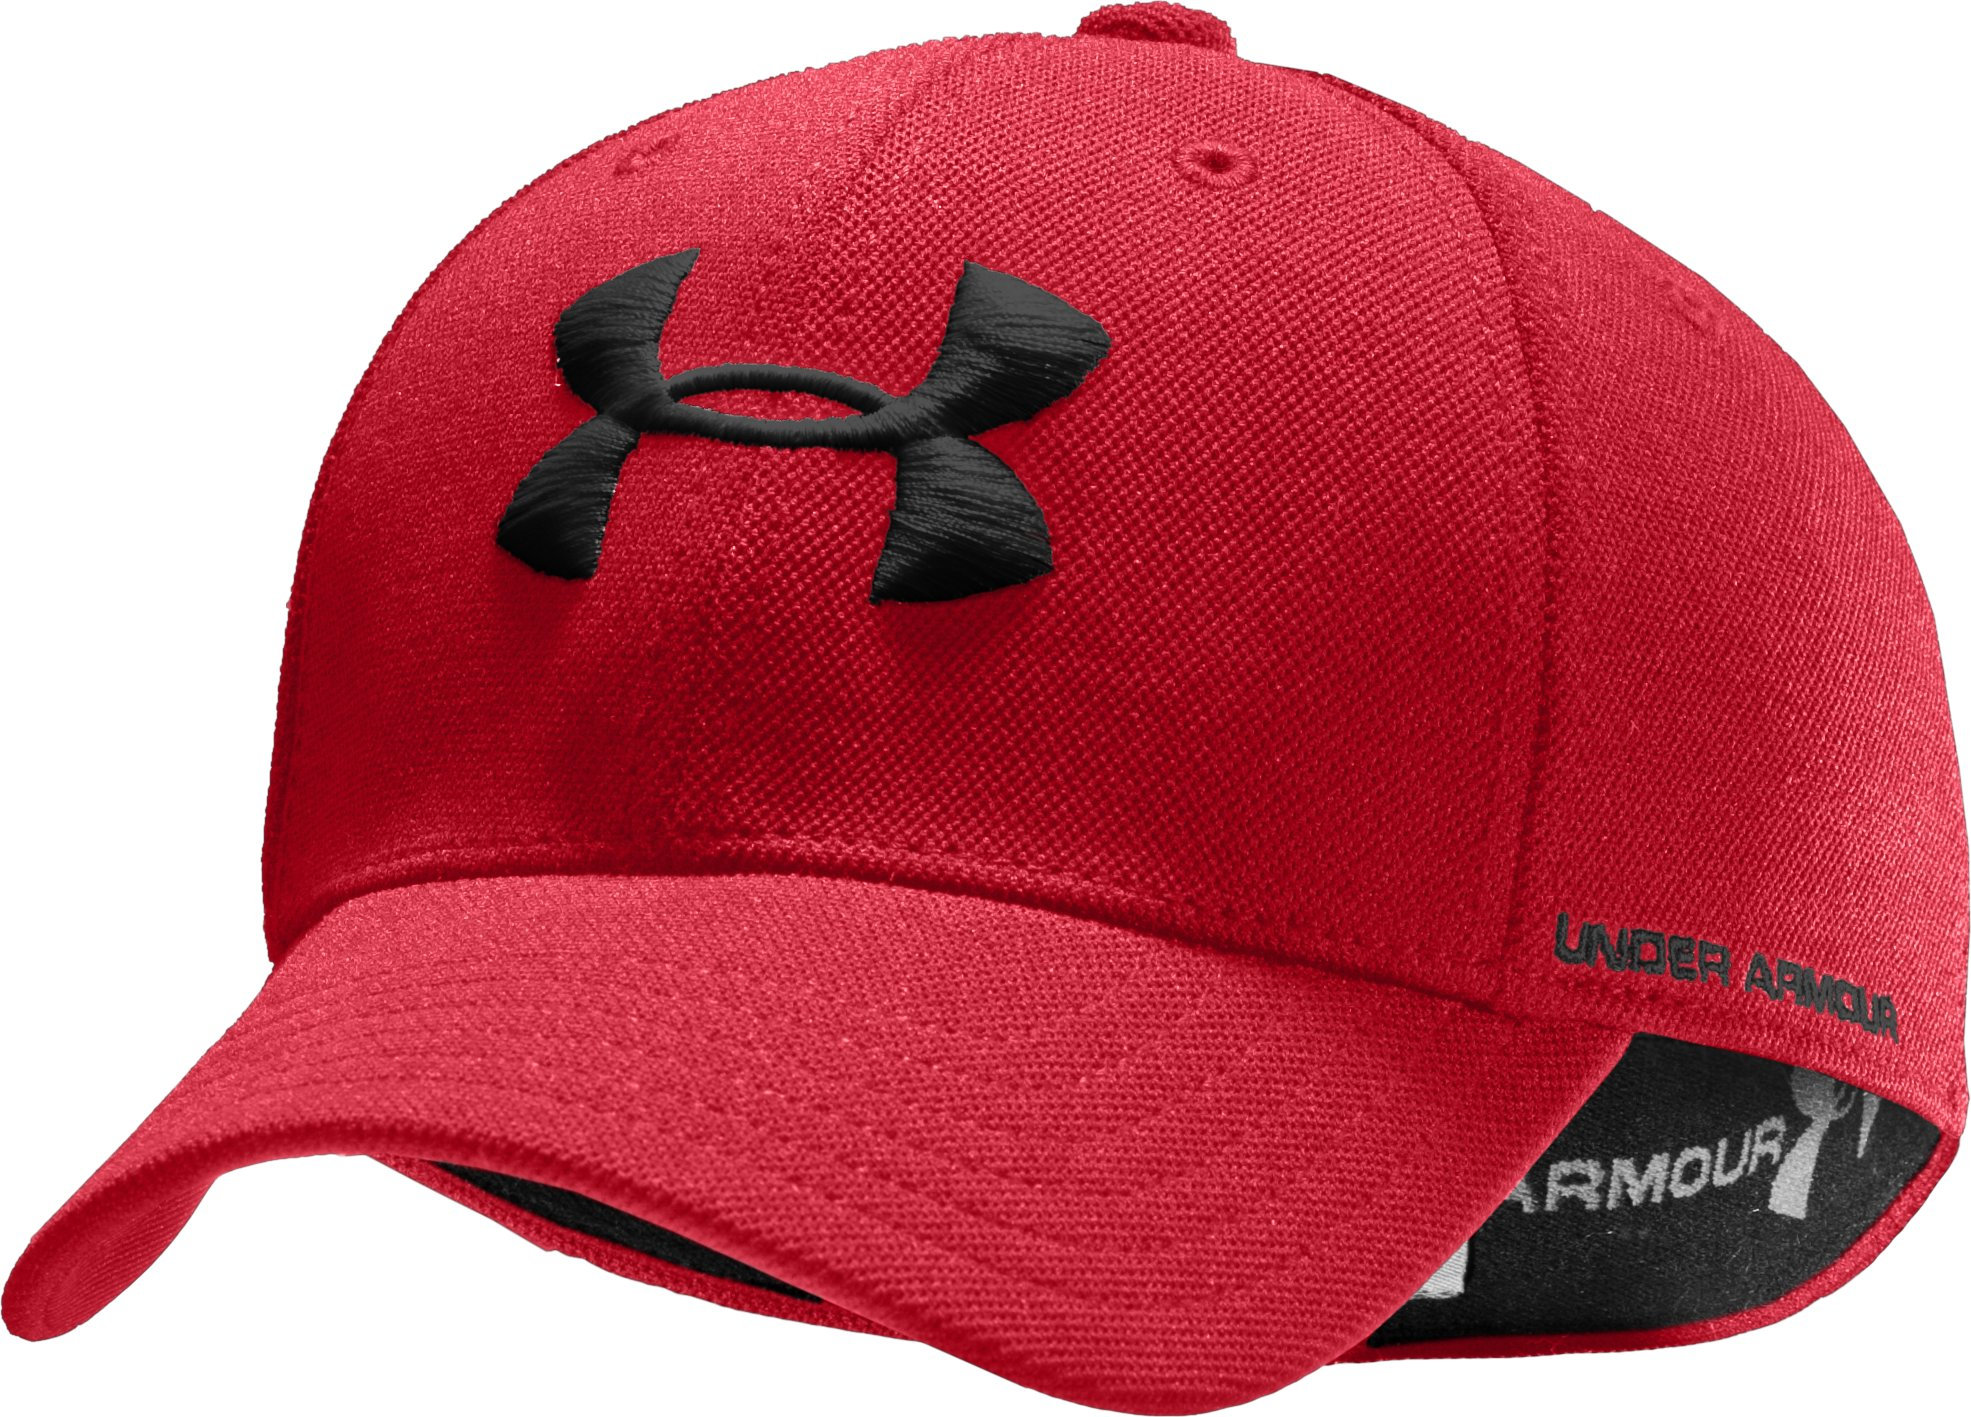 Boys' Armour® Stretch Fit Cap, Red